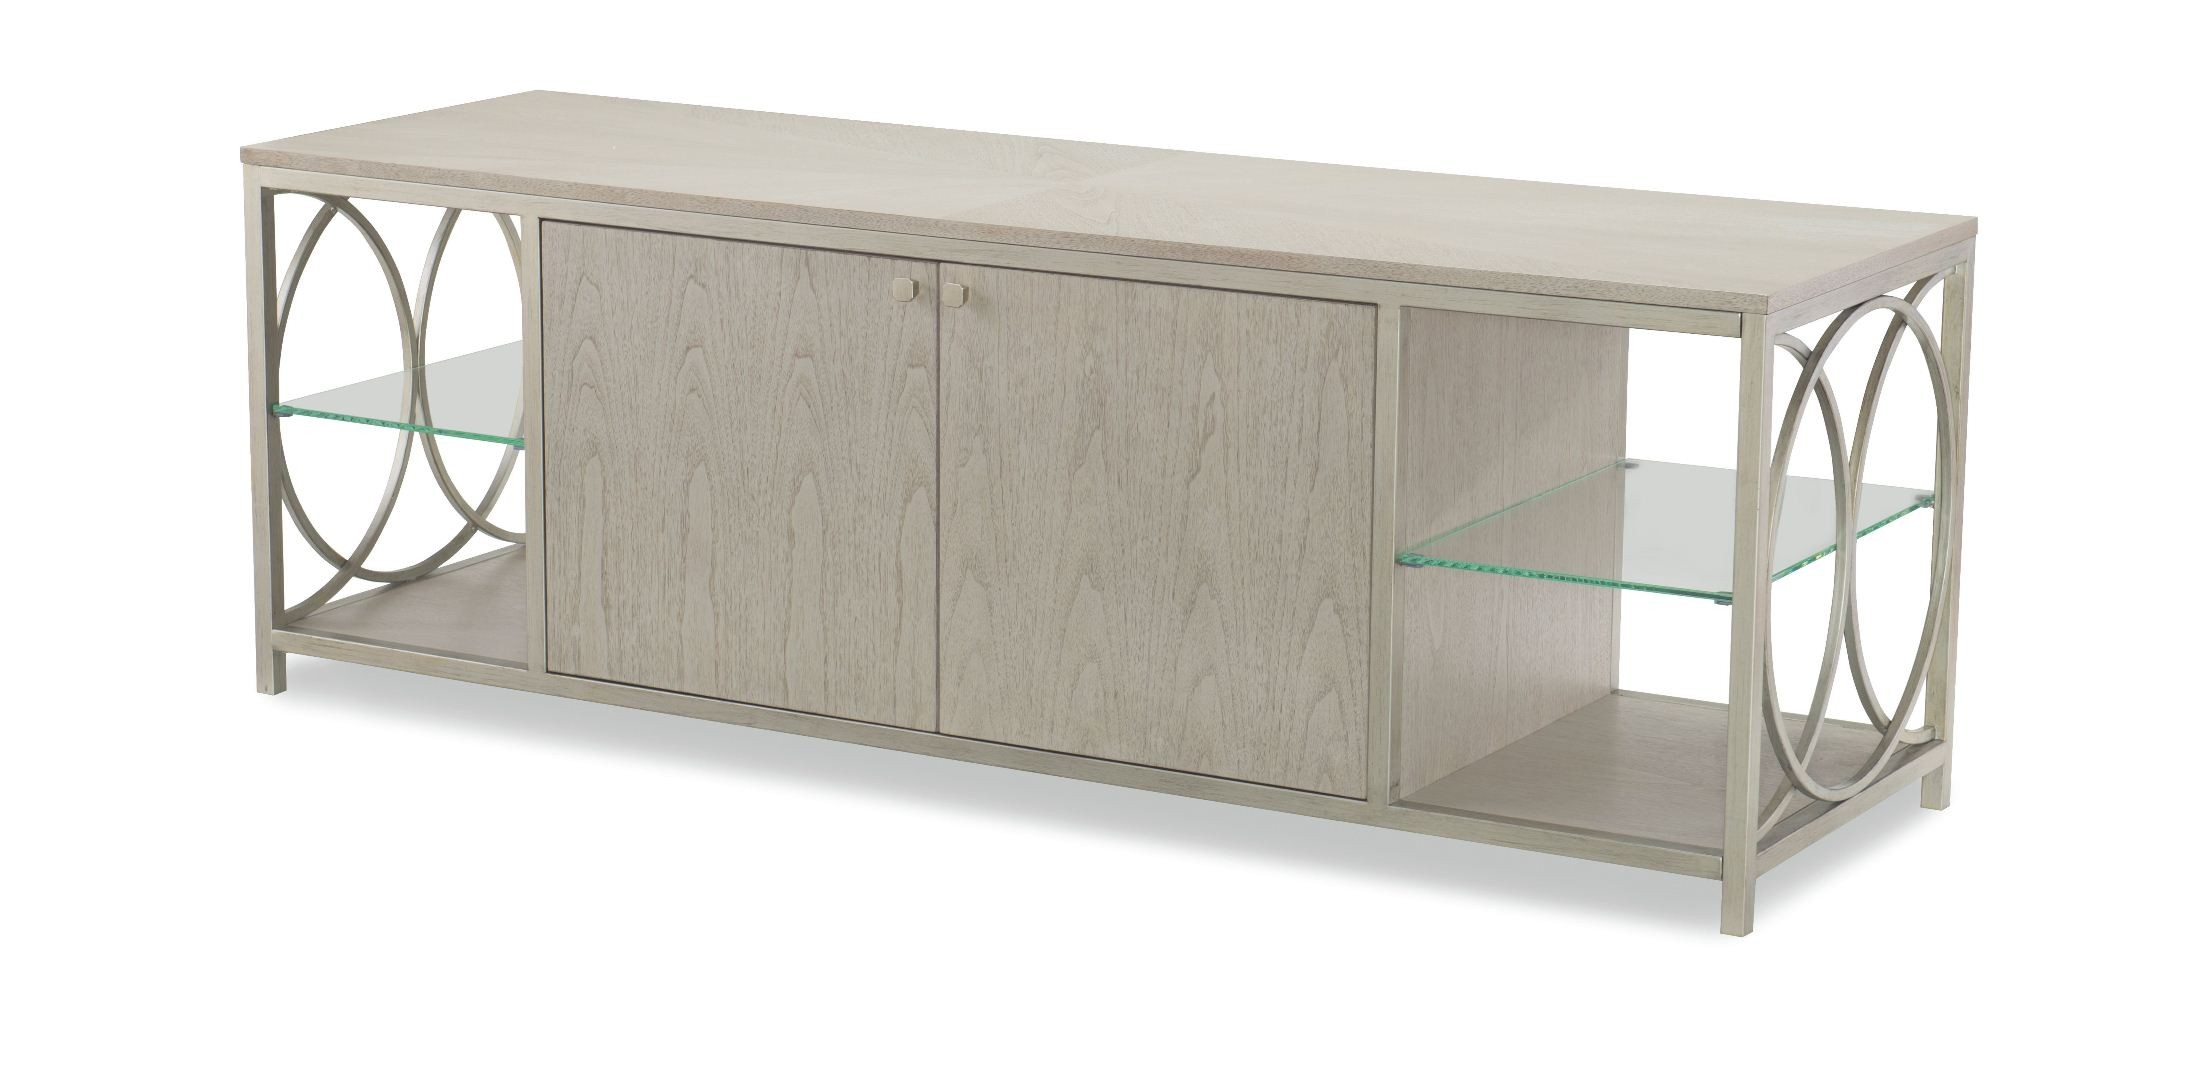 Cinema grays entertainment console from racheal ray home for Rachael ray furniture collection